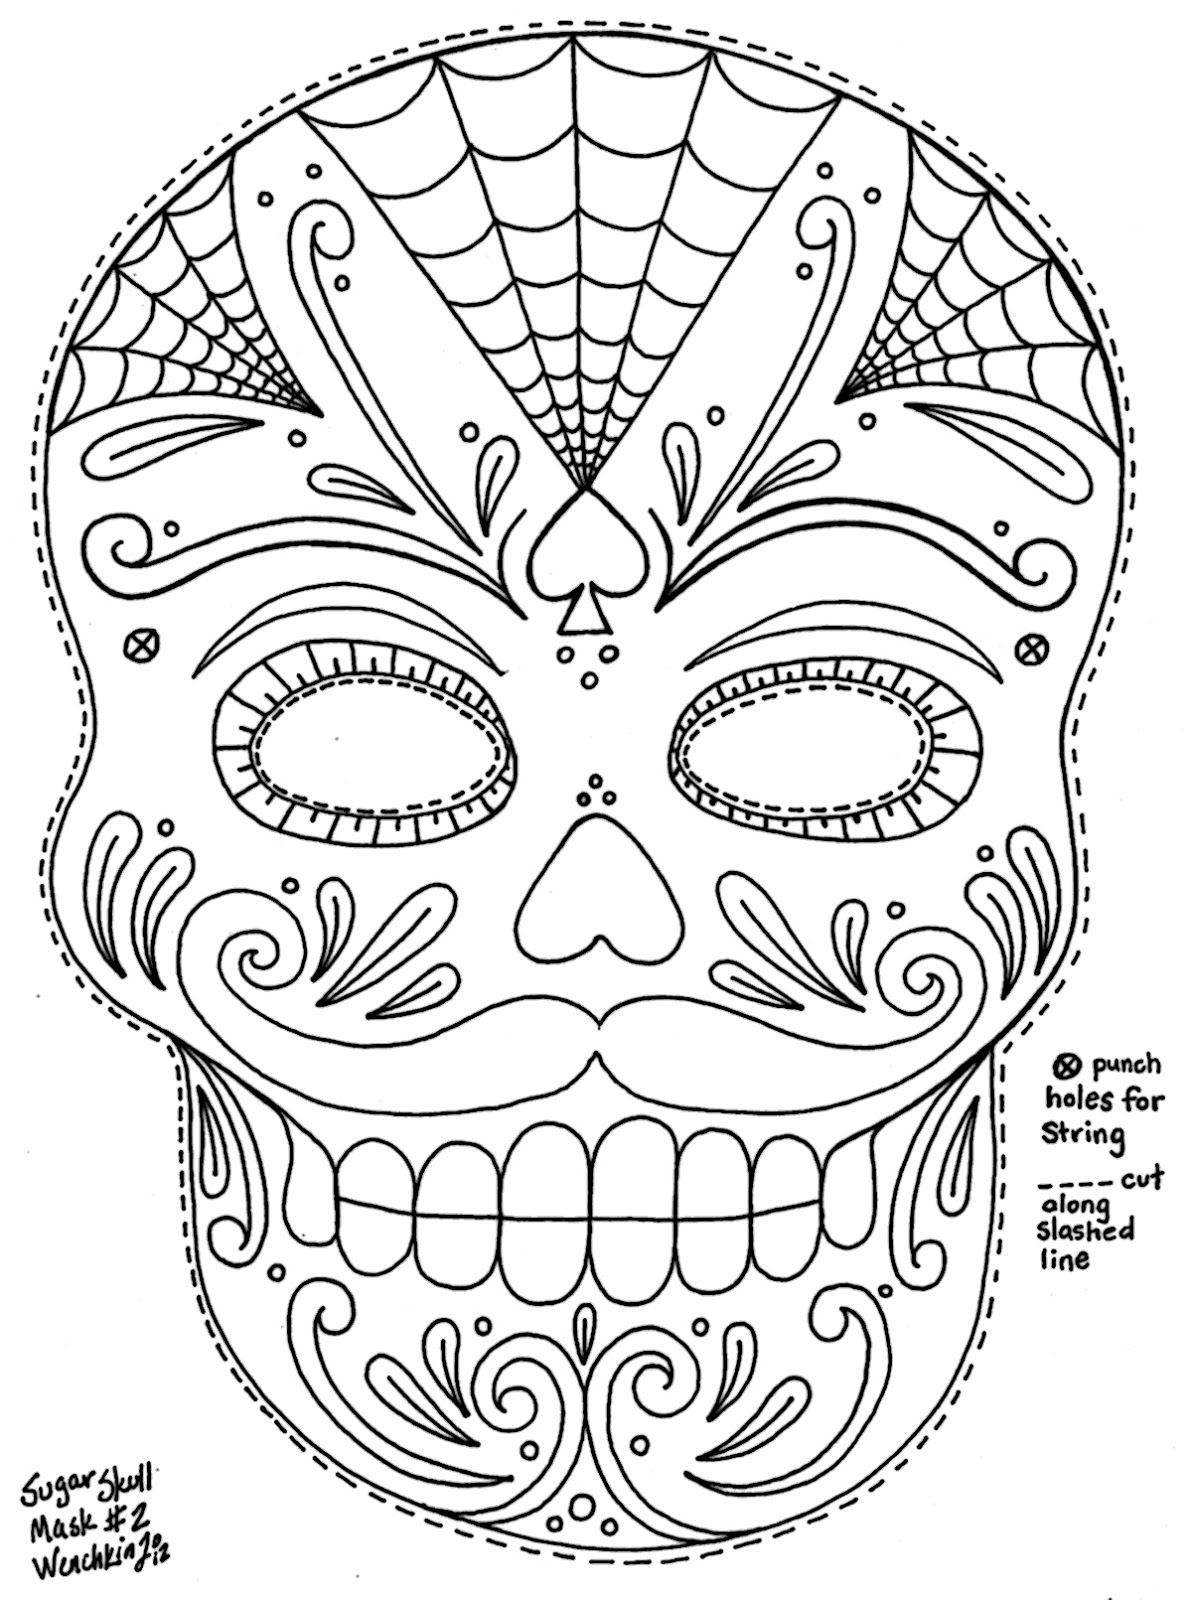 Yucca Flats, N.m.: Wenchkin's Coloring Pages - Moustached Sugar - Free Printable Sugar Skull Day Of The Dead Mask